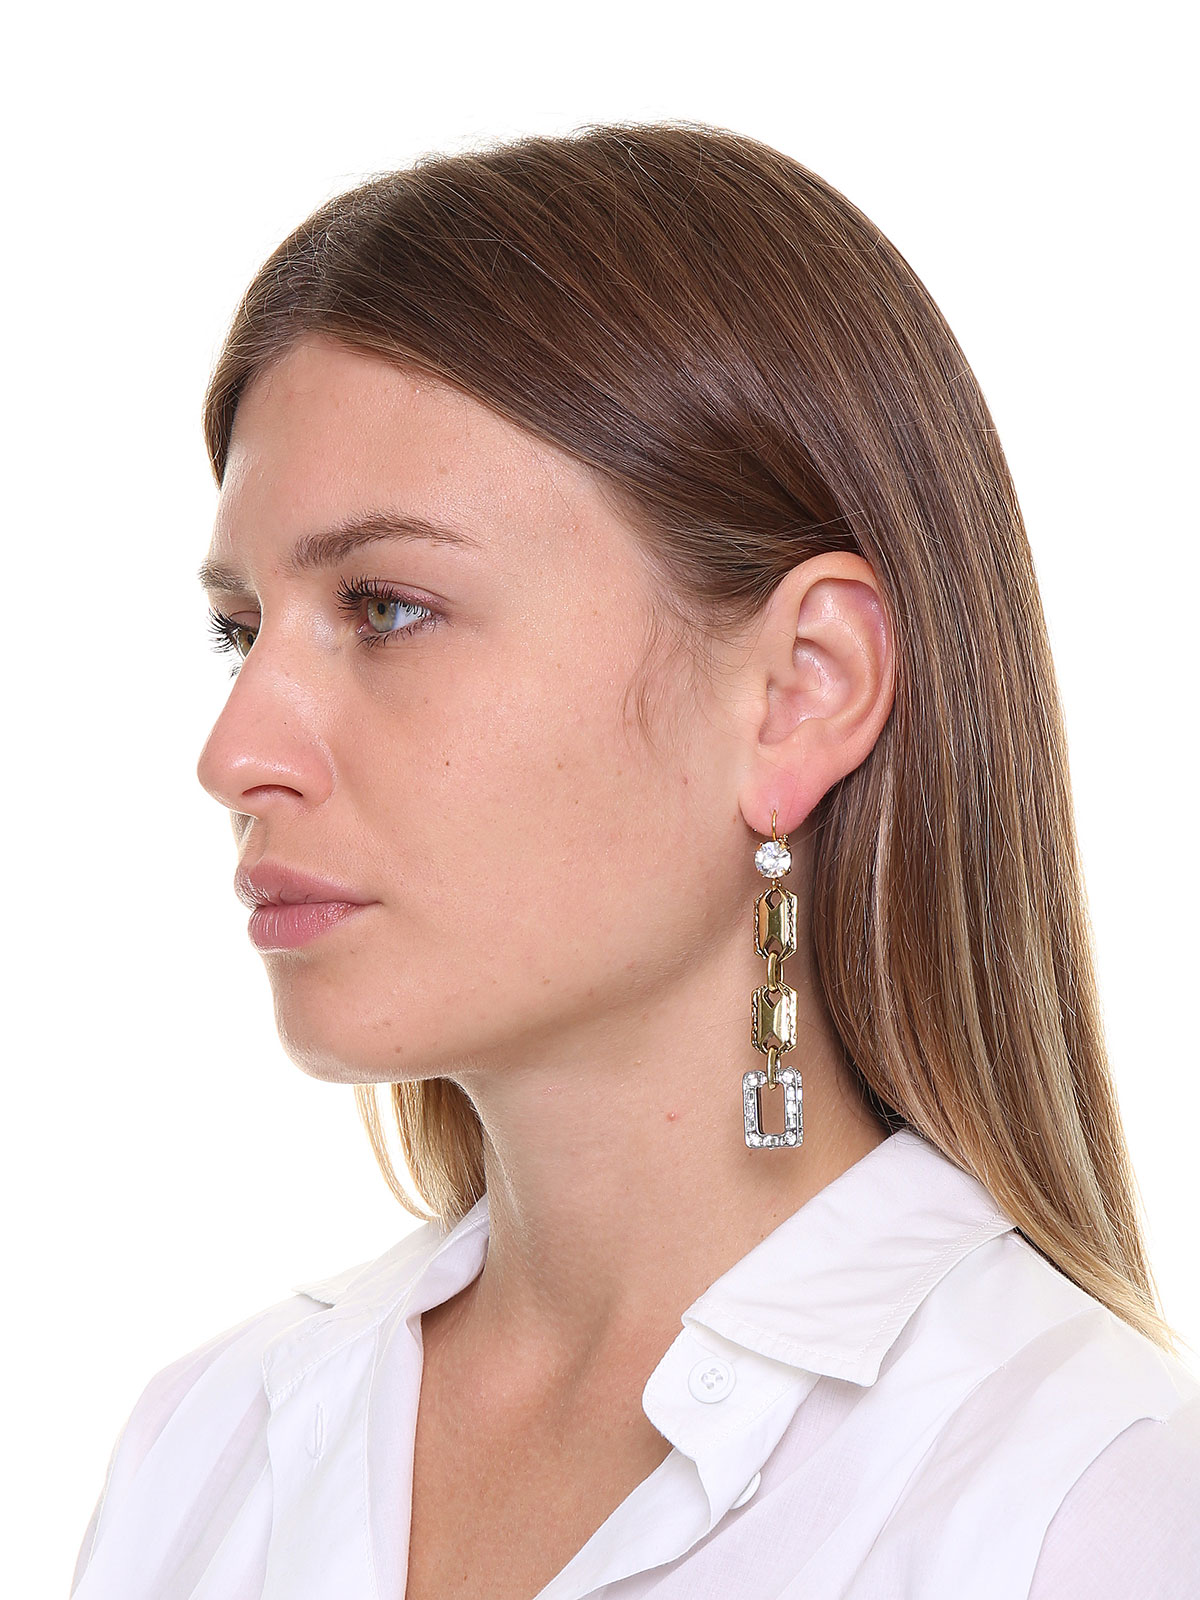 Metal earrings with crystals